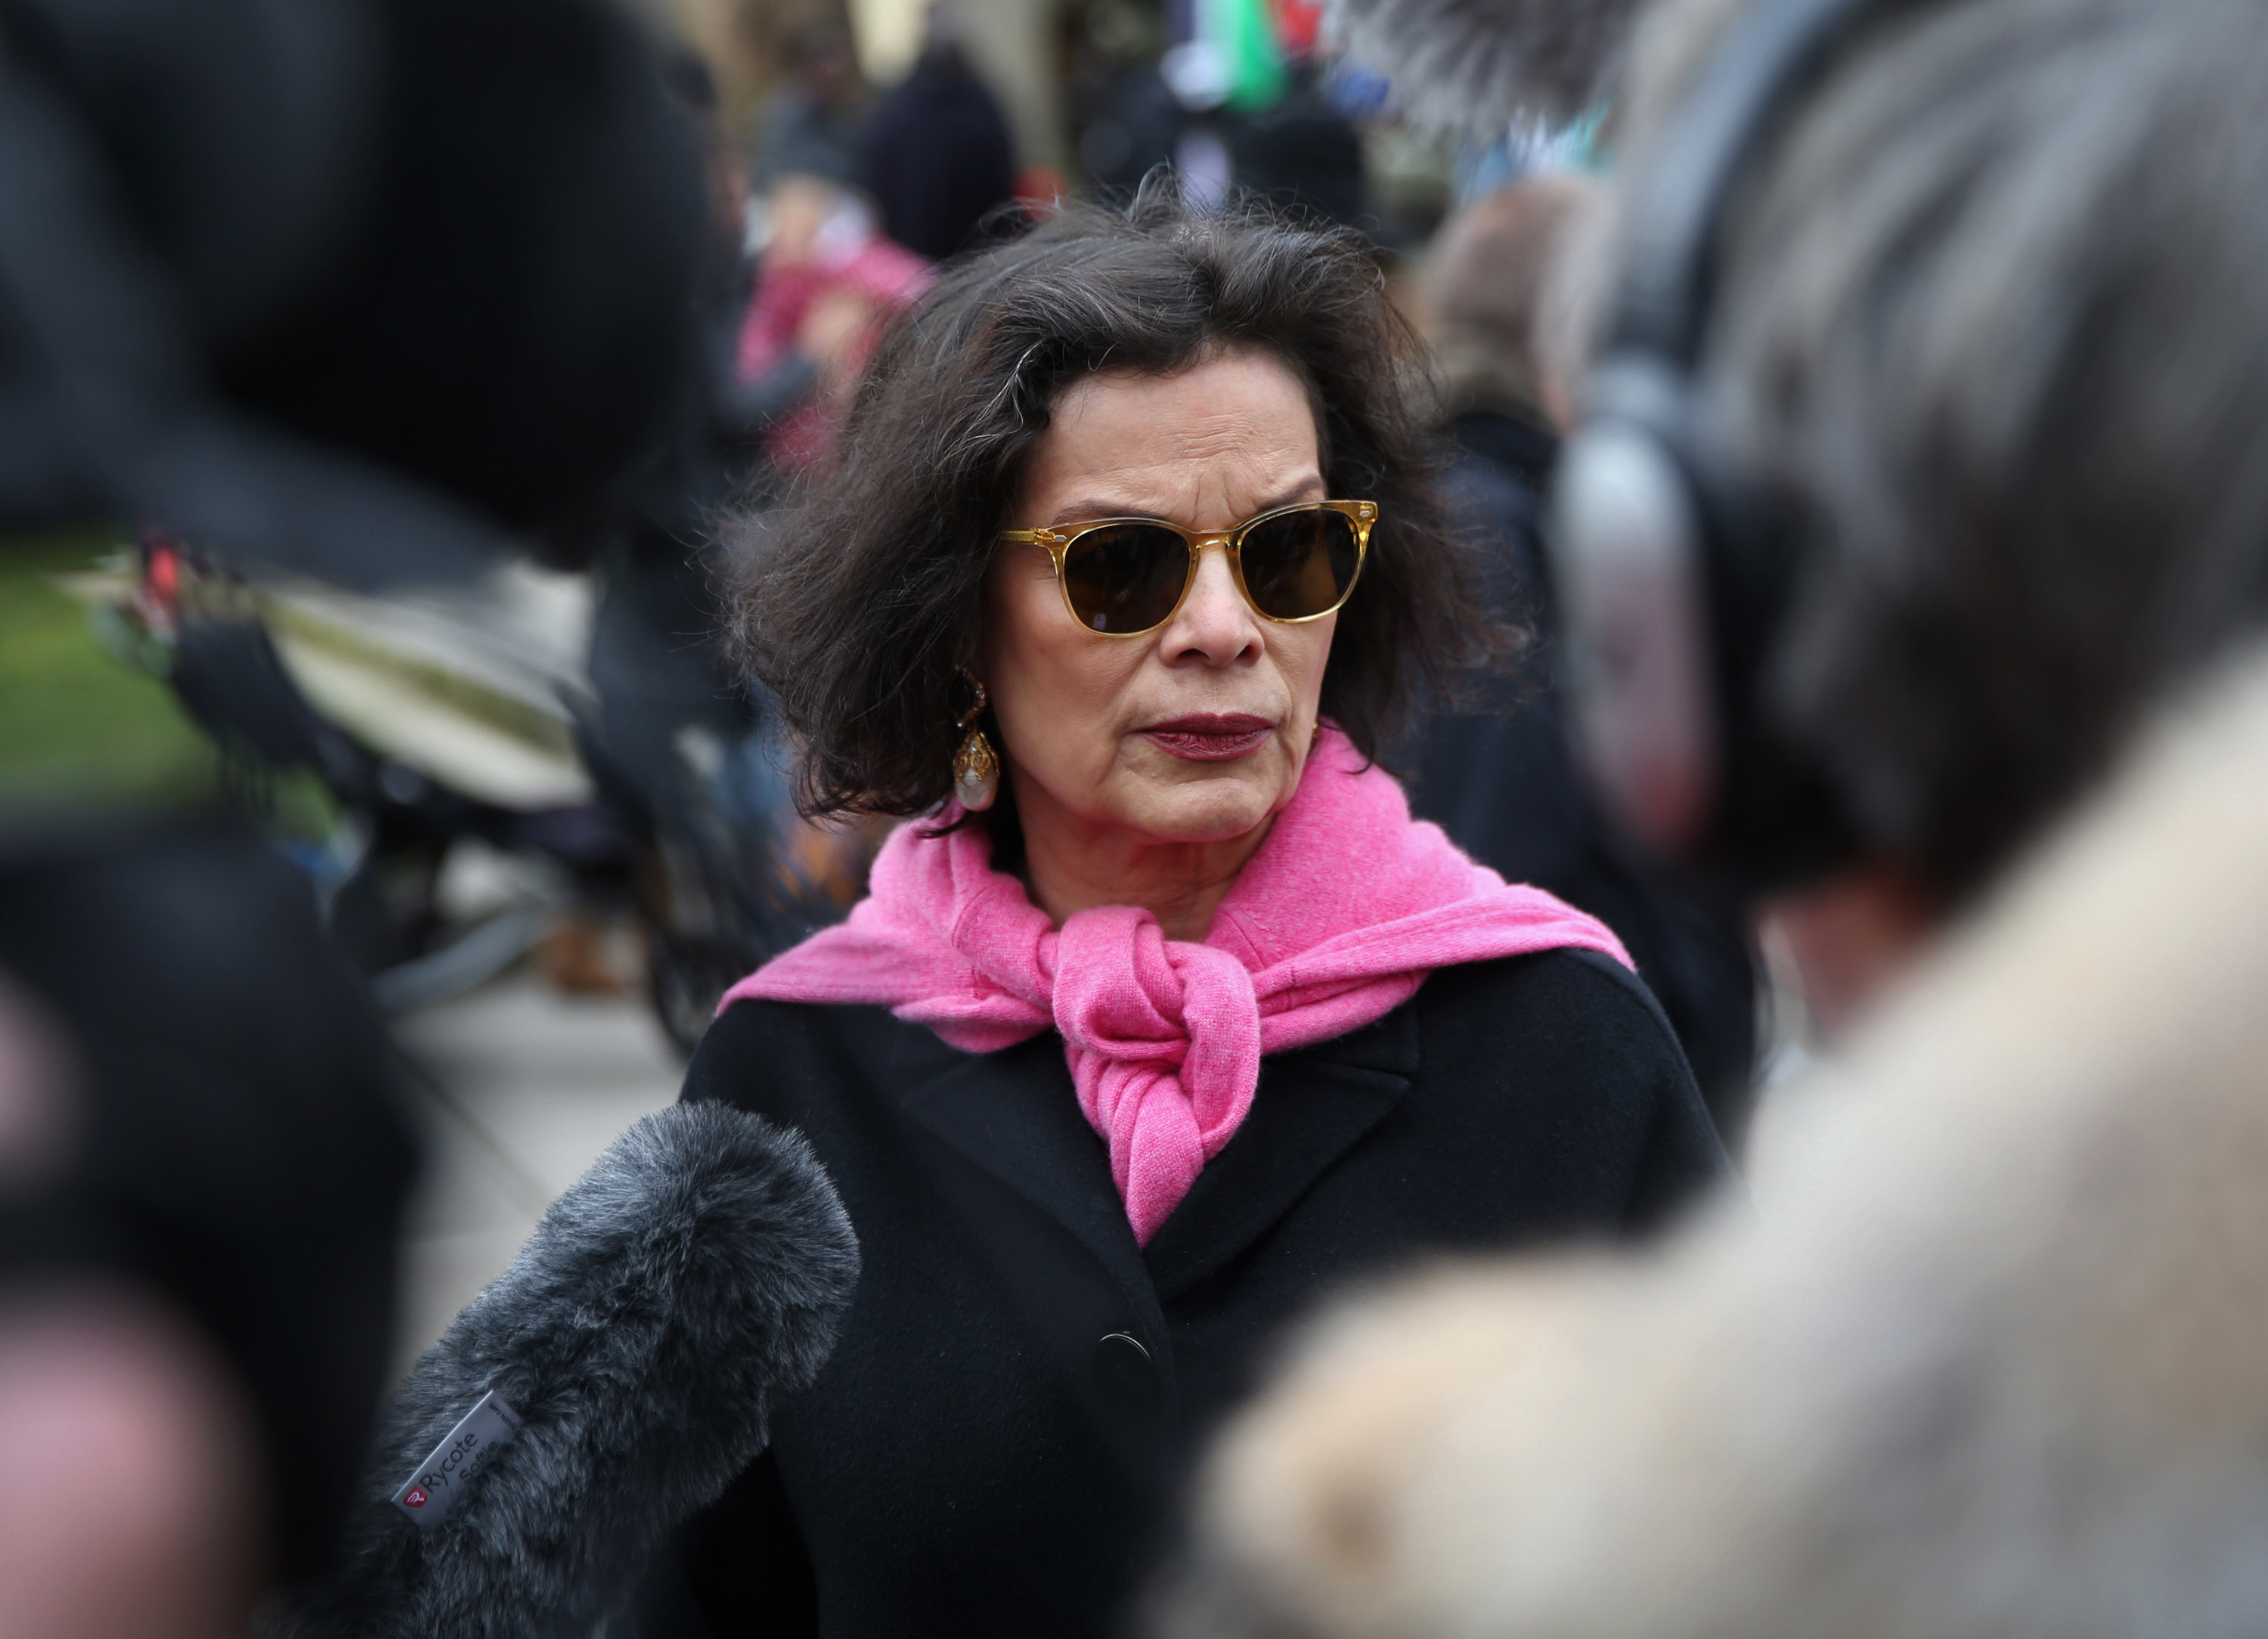 As Coverage of Nicaraguan Unrest Fades, Bianca Jagger Uses Twitter to Shine a Light on Her Native Country